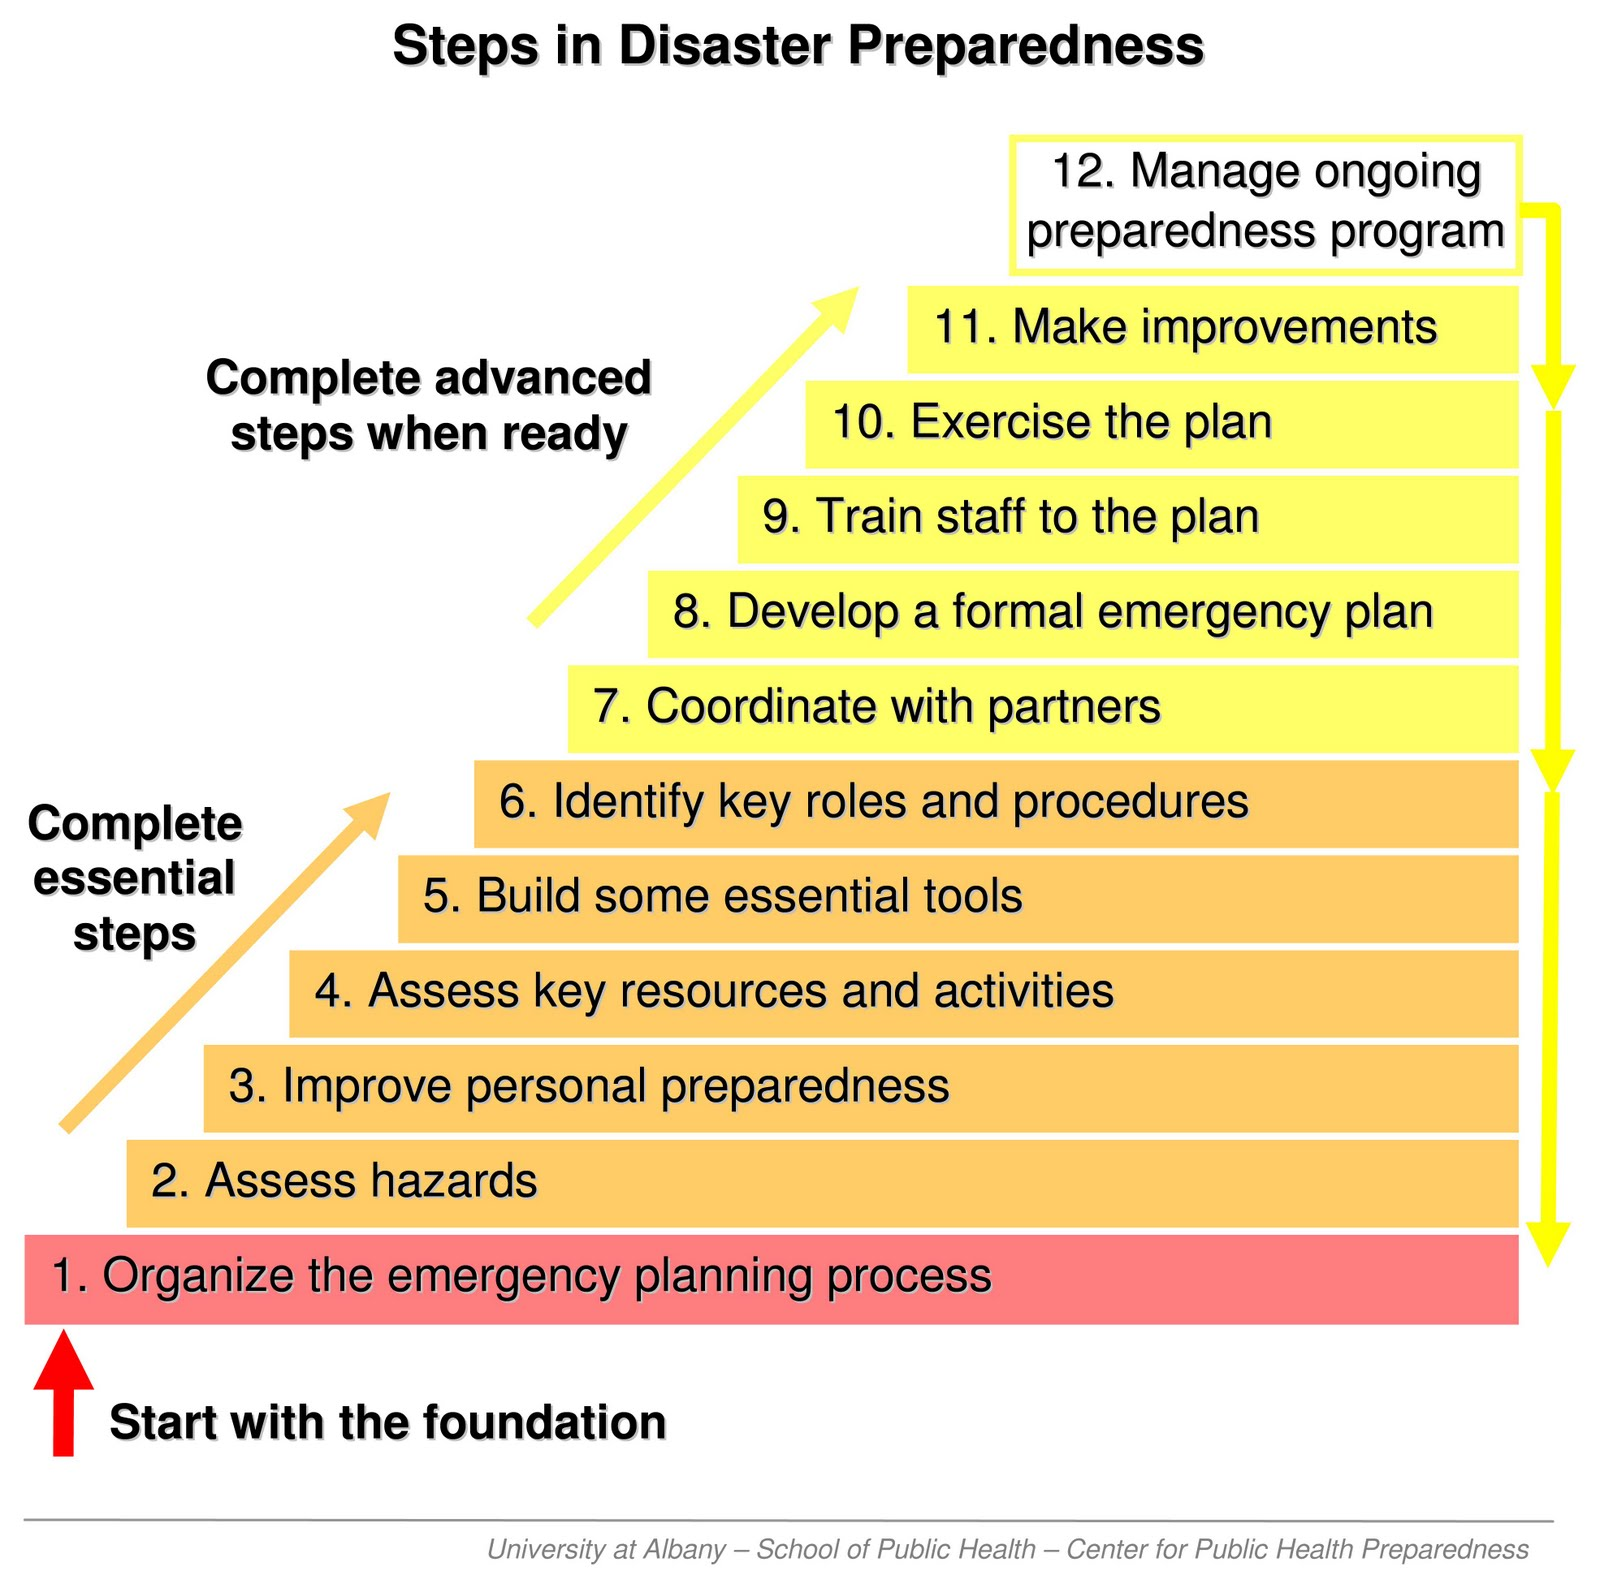 Disaster and emergency planning for preparedness response